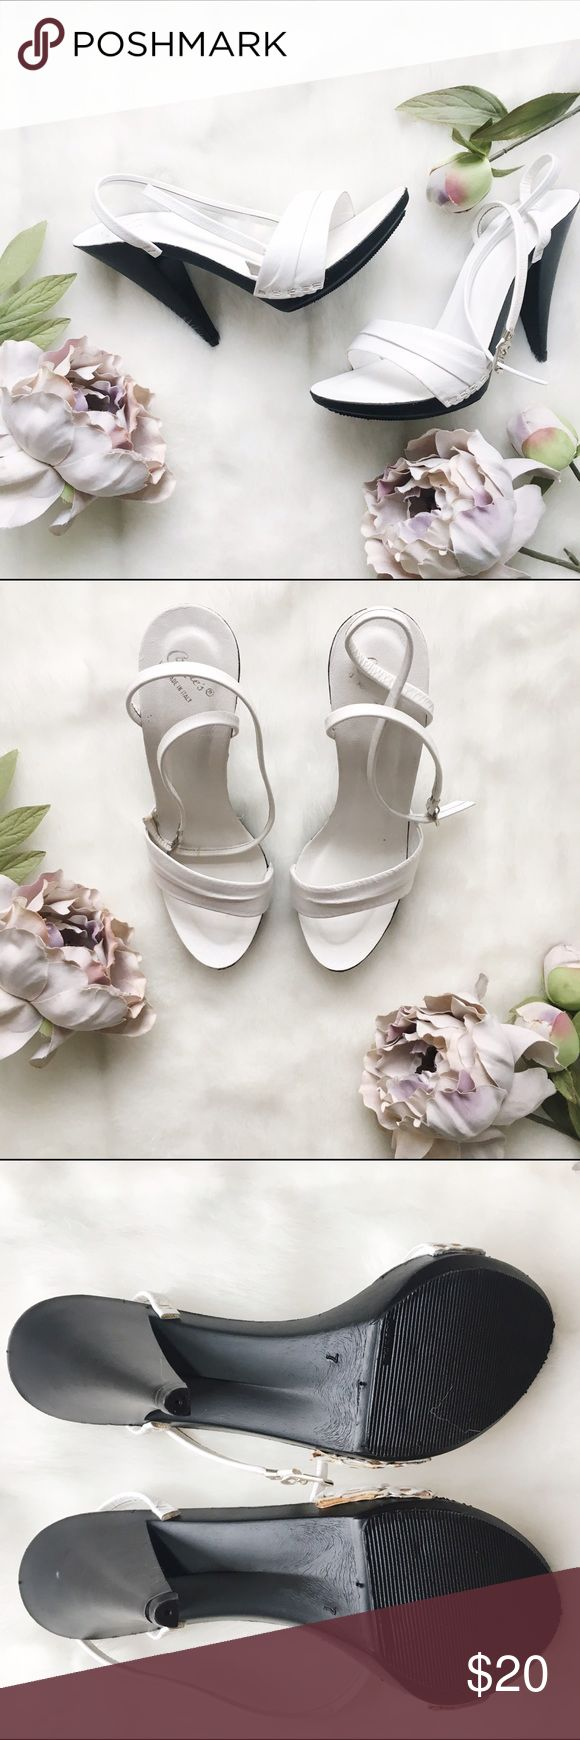 "White strappy sandals with chunky heel White sandals with black chunky heel. Approximately 4.5"" heel. Ankle straps.  Never worn.   * Fast shipping * Discounts on bundles Candie's Shoes Sandals"